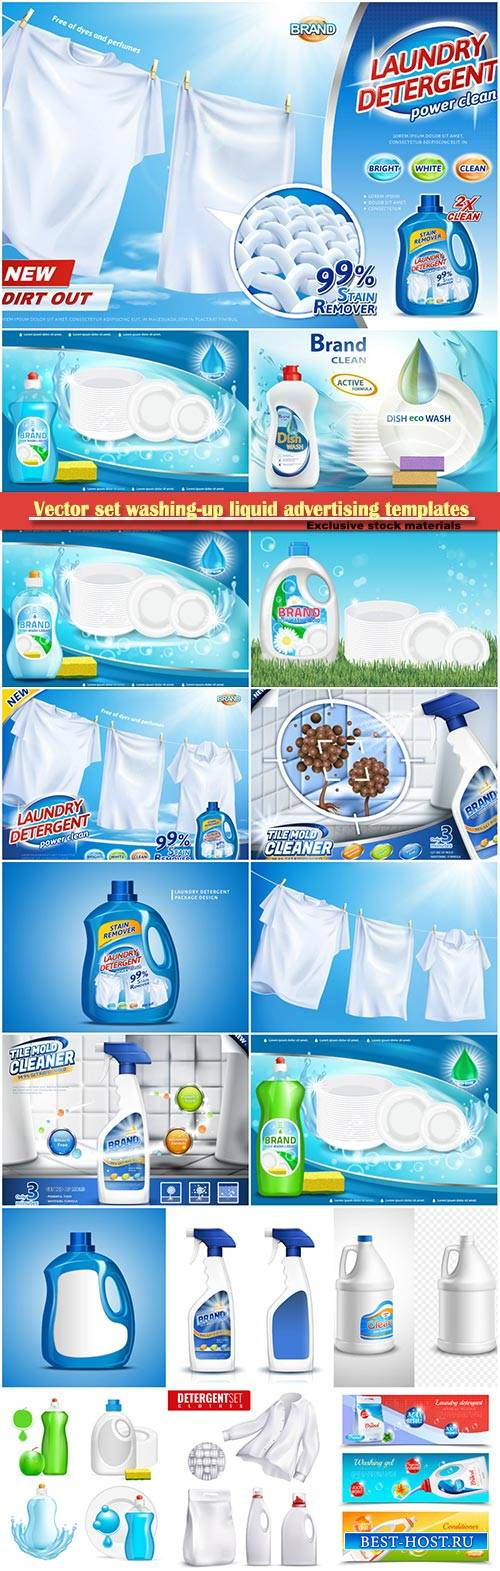 Vector set washing-up liquid advertising templates